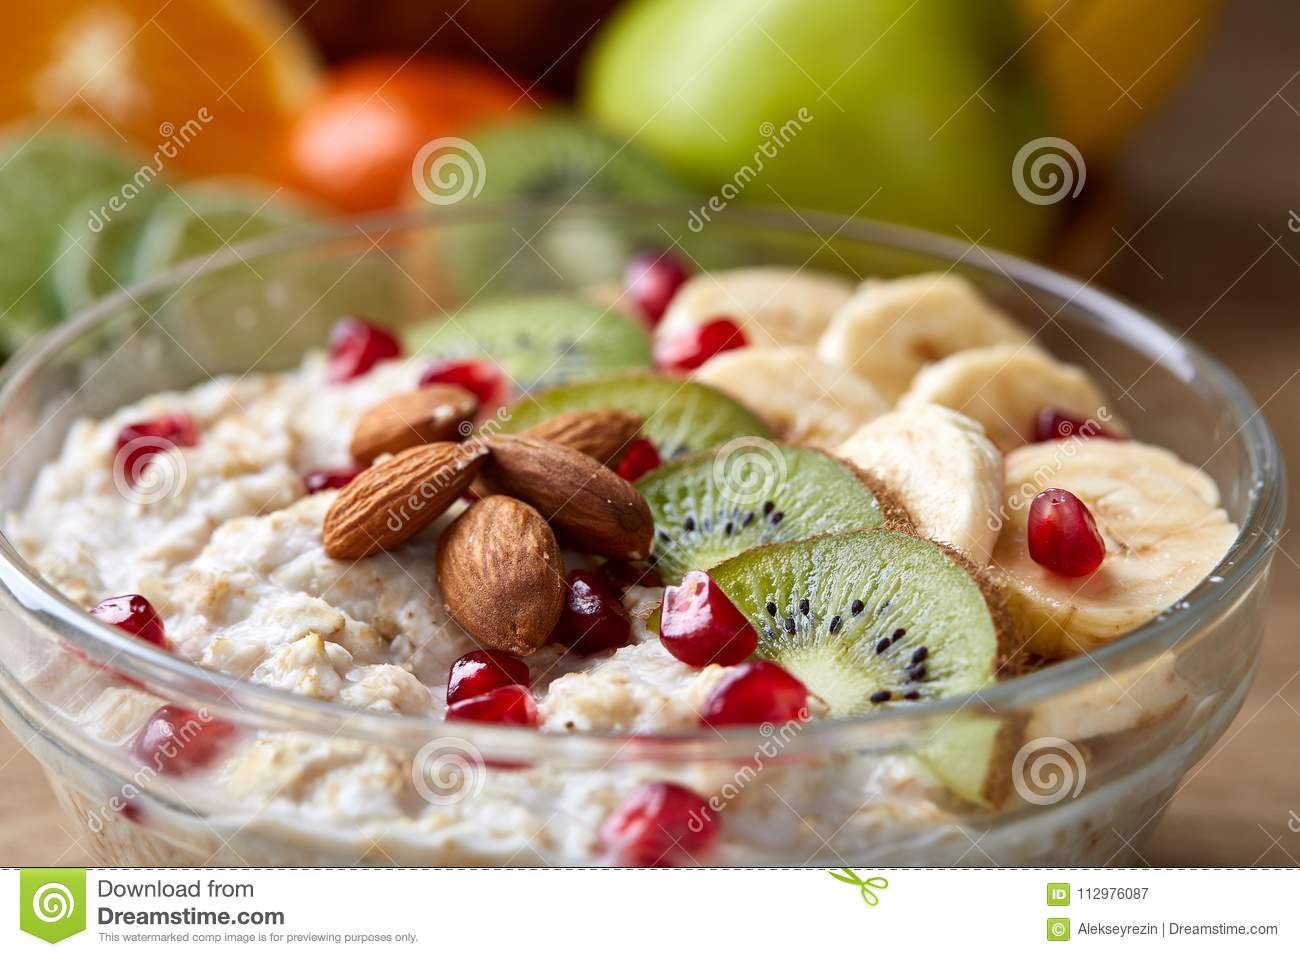 Breakfast still life with oatmeal porridge and fruits, top view, selective focus, shallow depth of field.